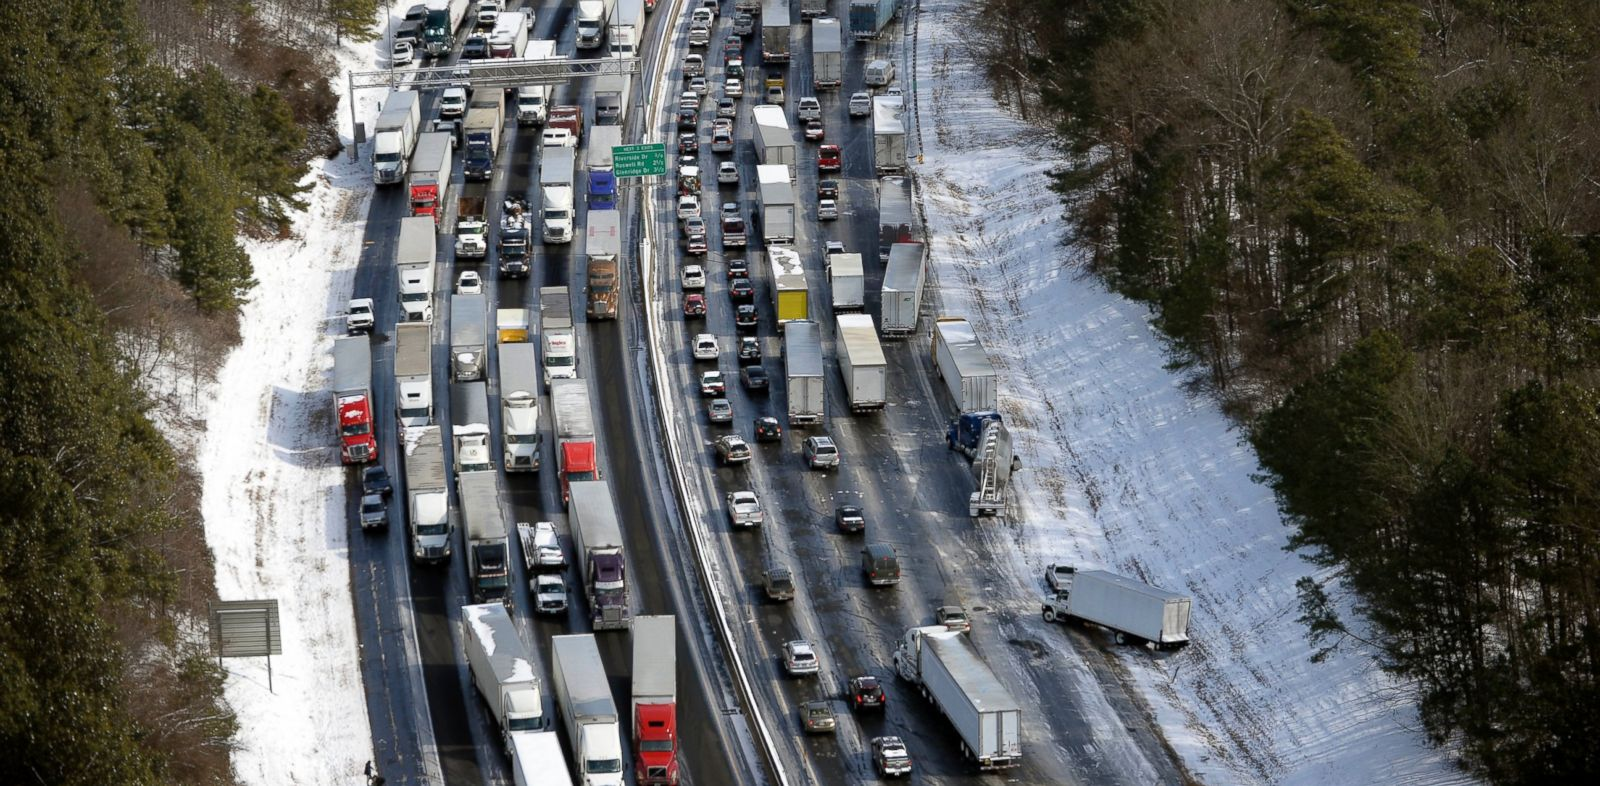 PHOTO: In this aerial photo, traffic is snarled along the I-285 perimeter north of the metro area after a winter snow storm on Jan. 29, 2014, in Atlanta.